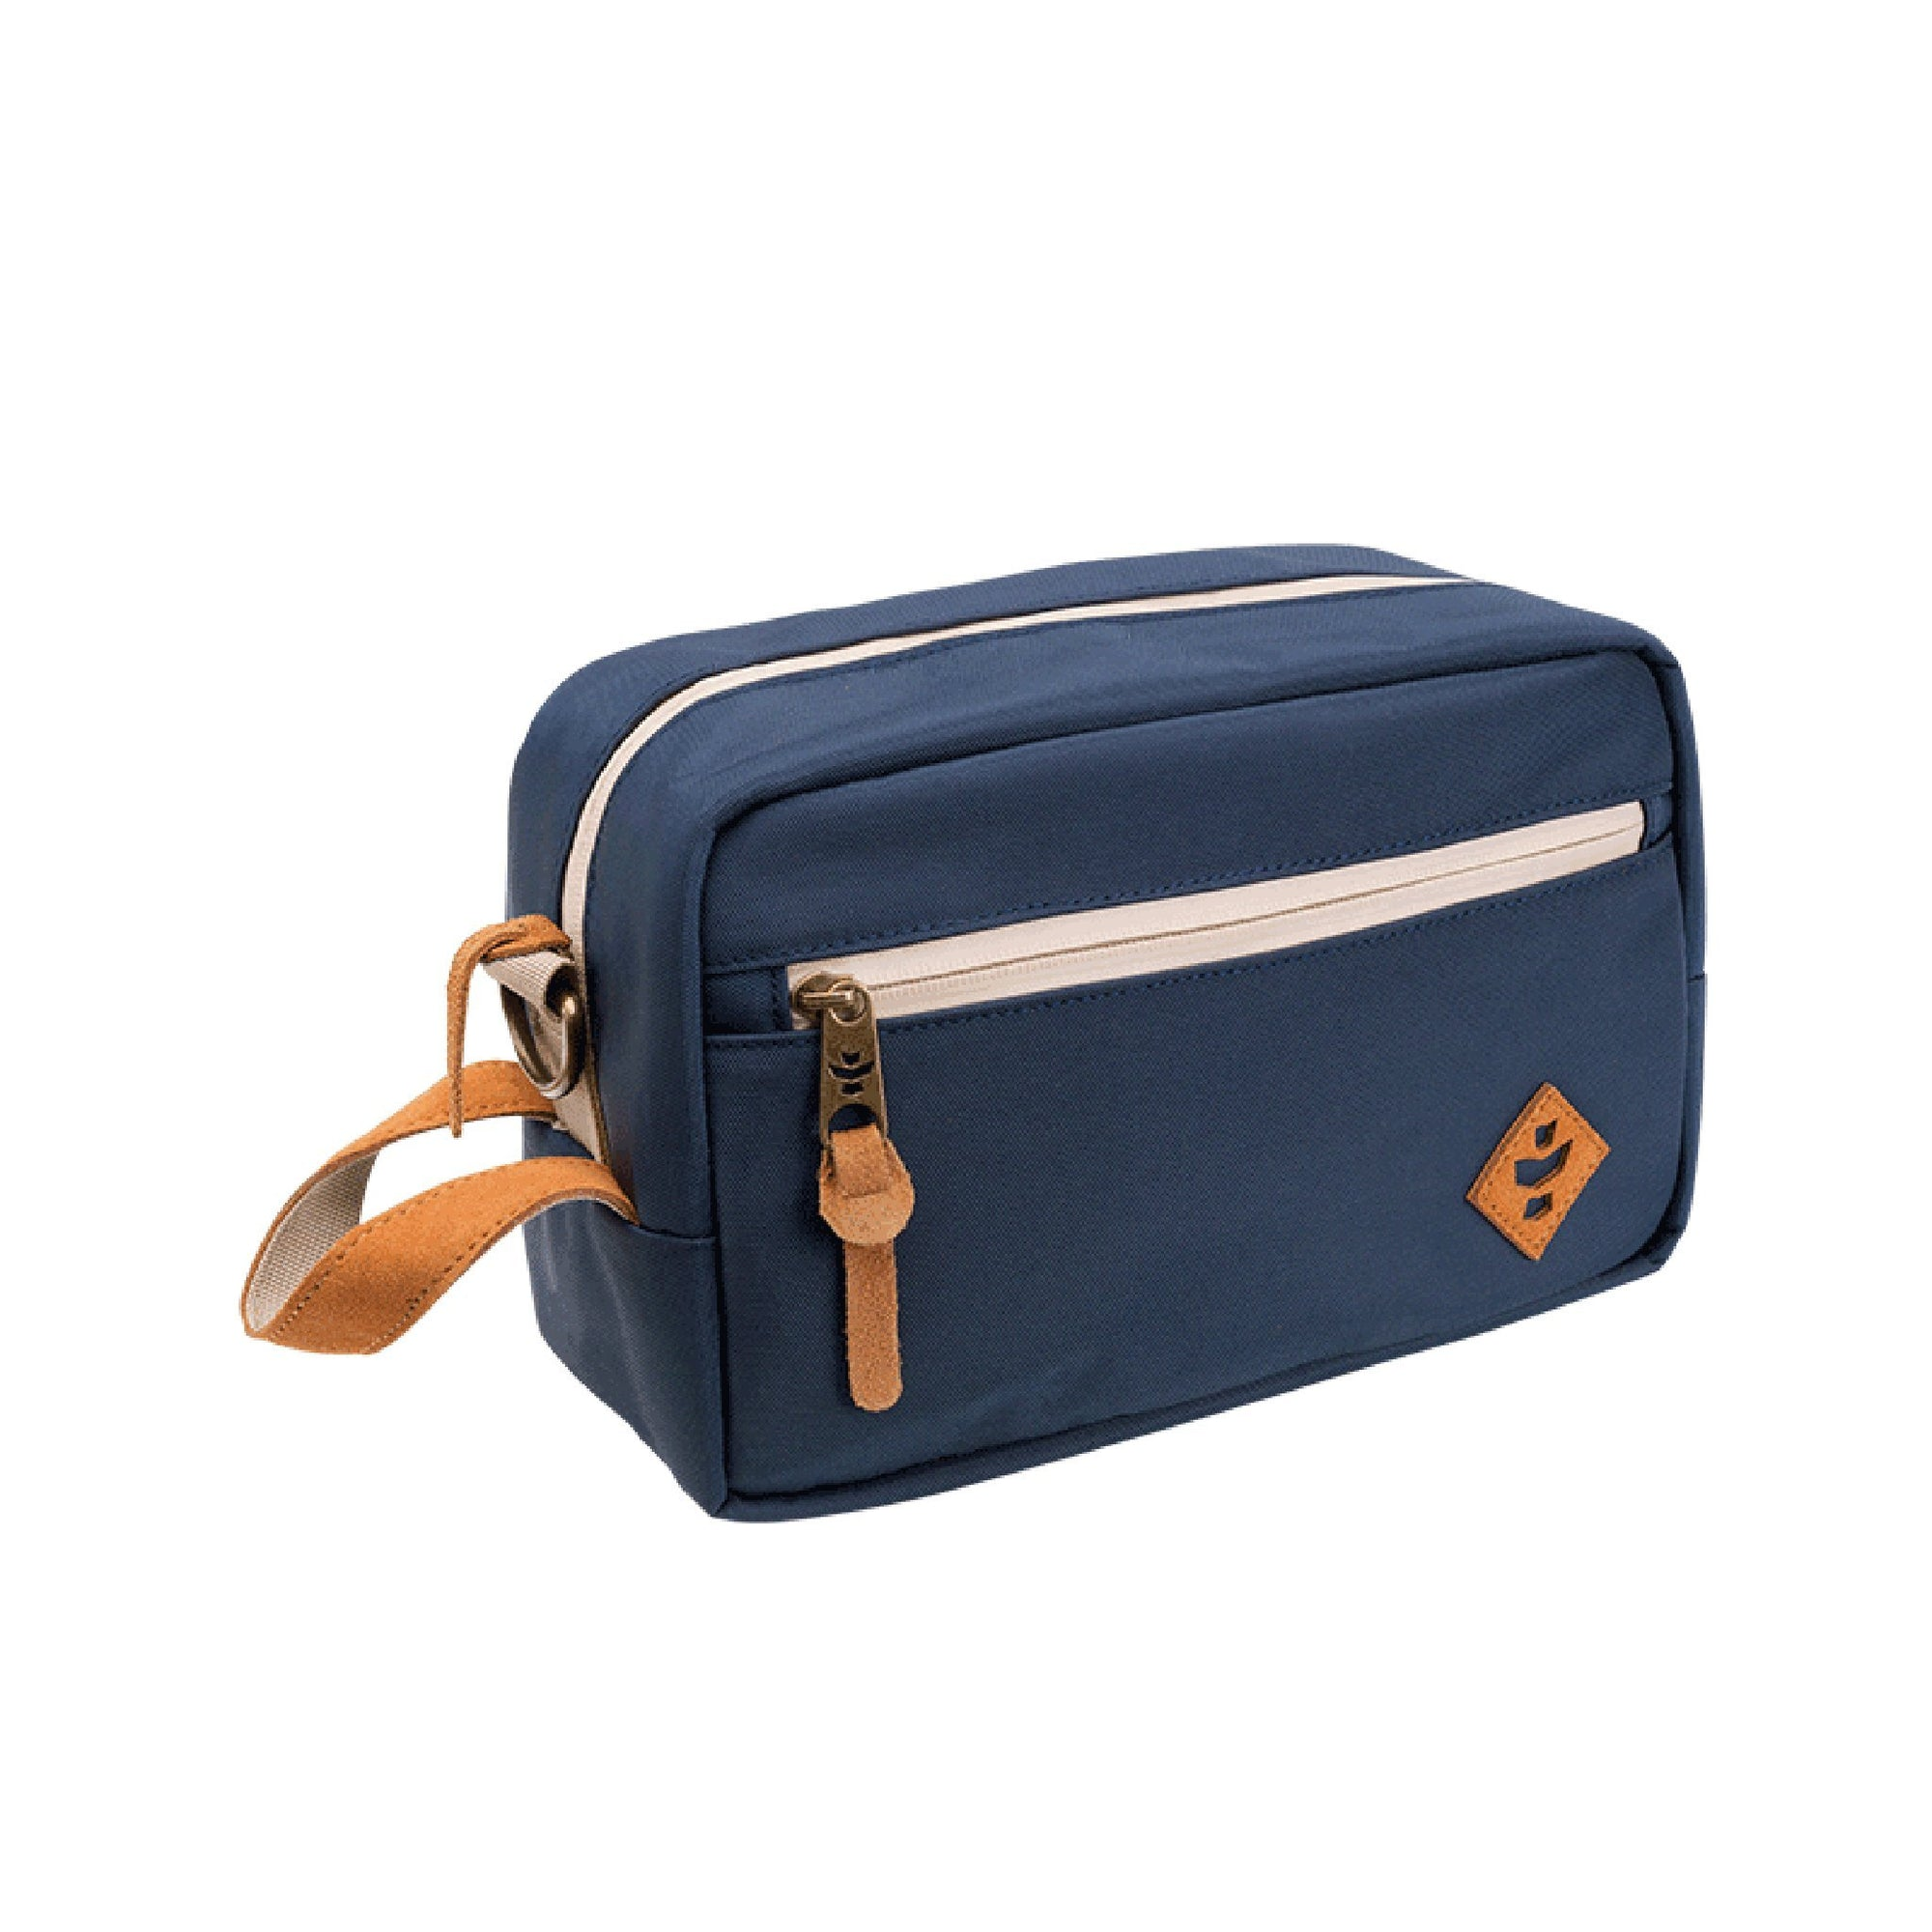 Front part of a 10 inch Revelry Stowaway bag navy blue color with brown accents smoking accessory